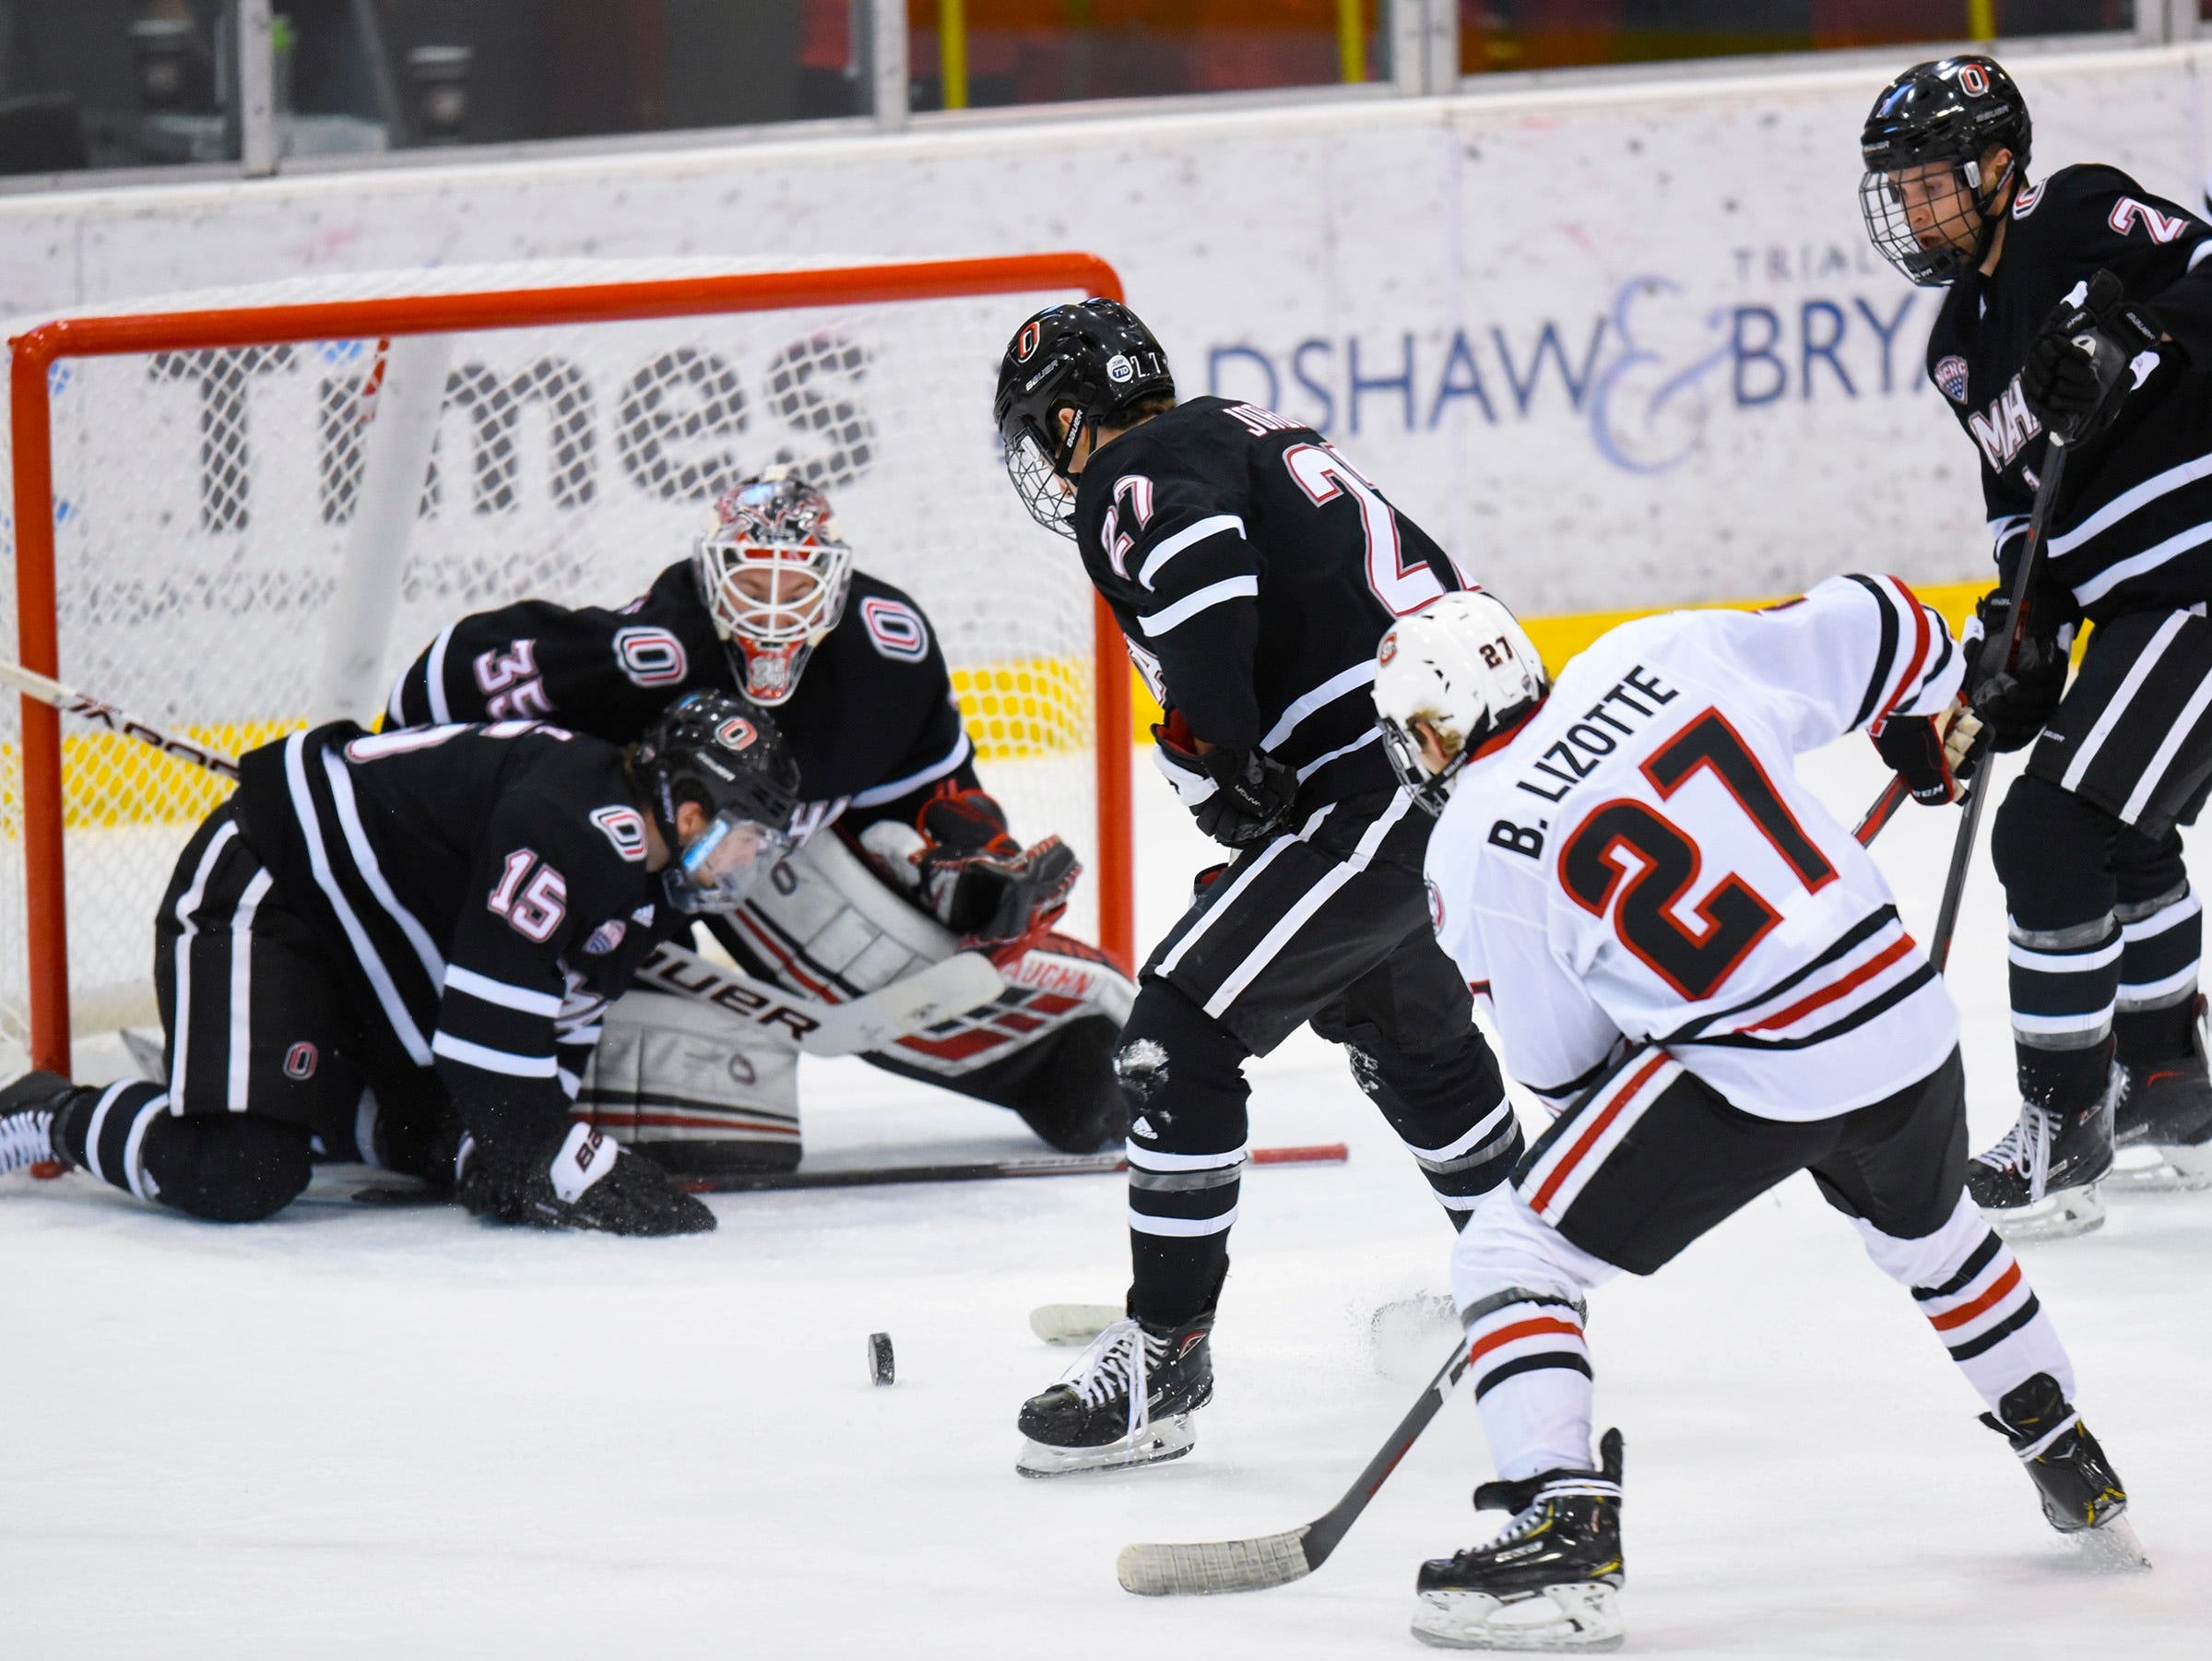 St. Cloud State's Blake Lizotte takes a shot at the Nebraska-Omaha goal during the first period Friday, Dec. 7, at the Herb Brooks National Hockey Center.